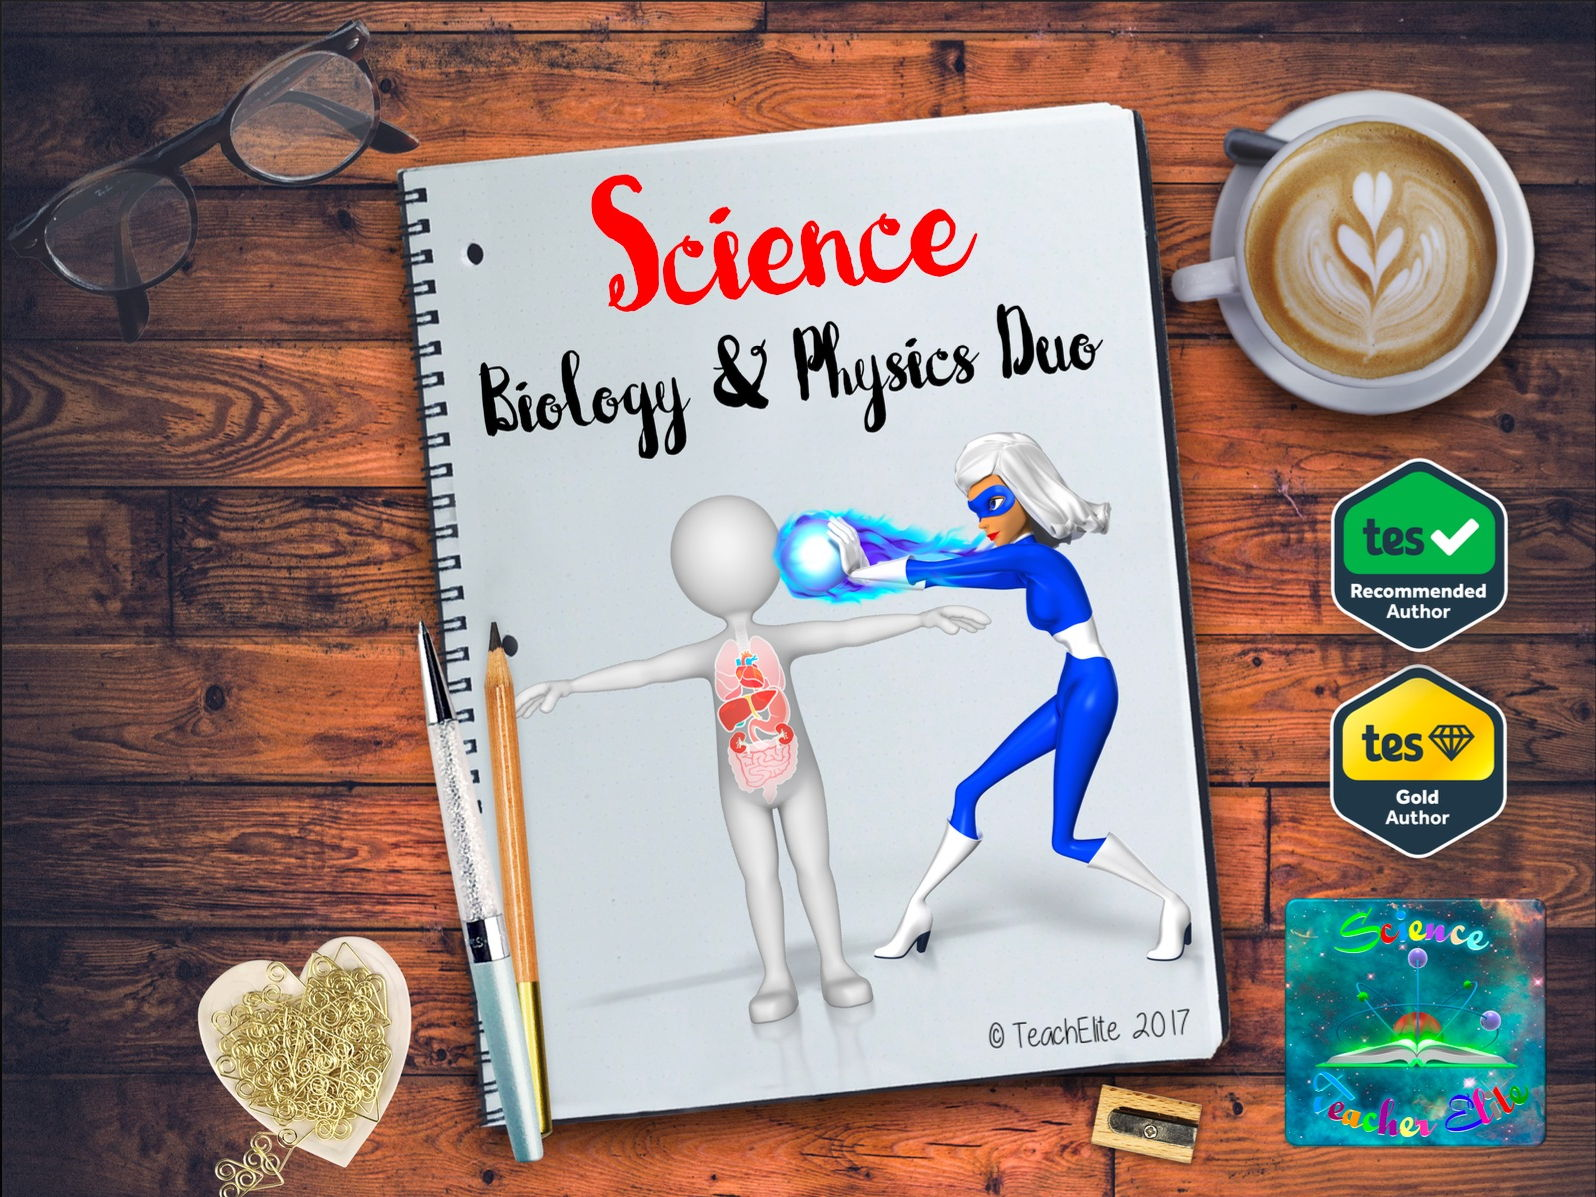 Biology & Physics saver